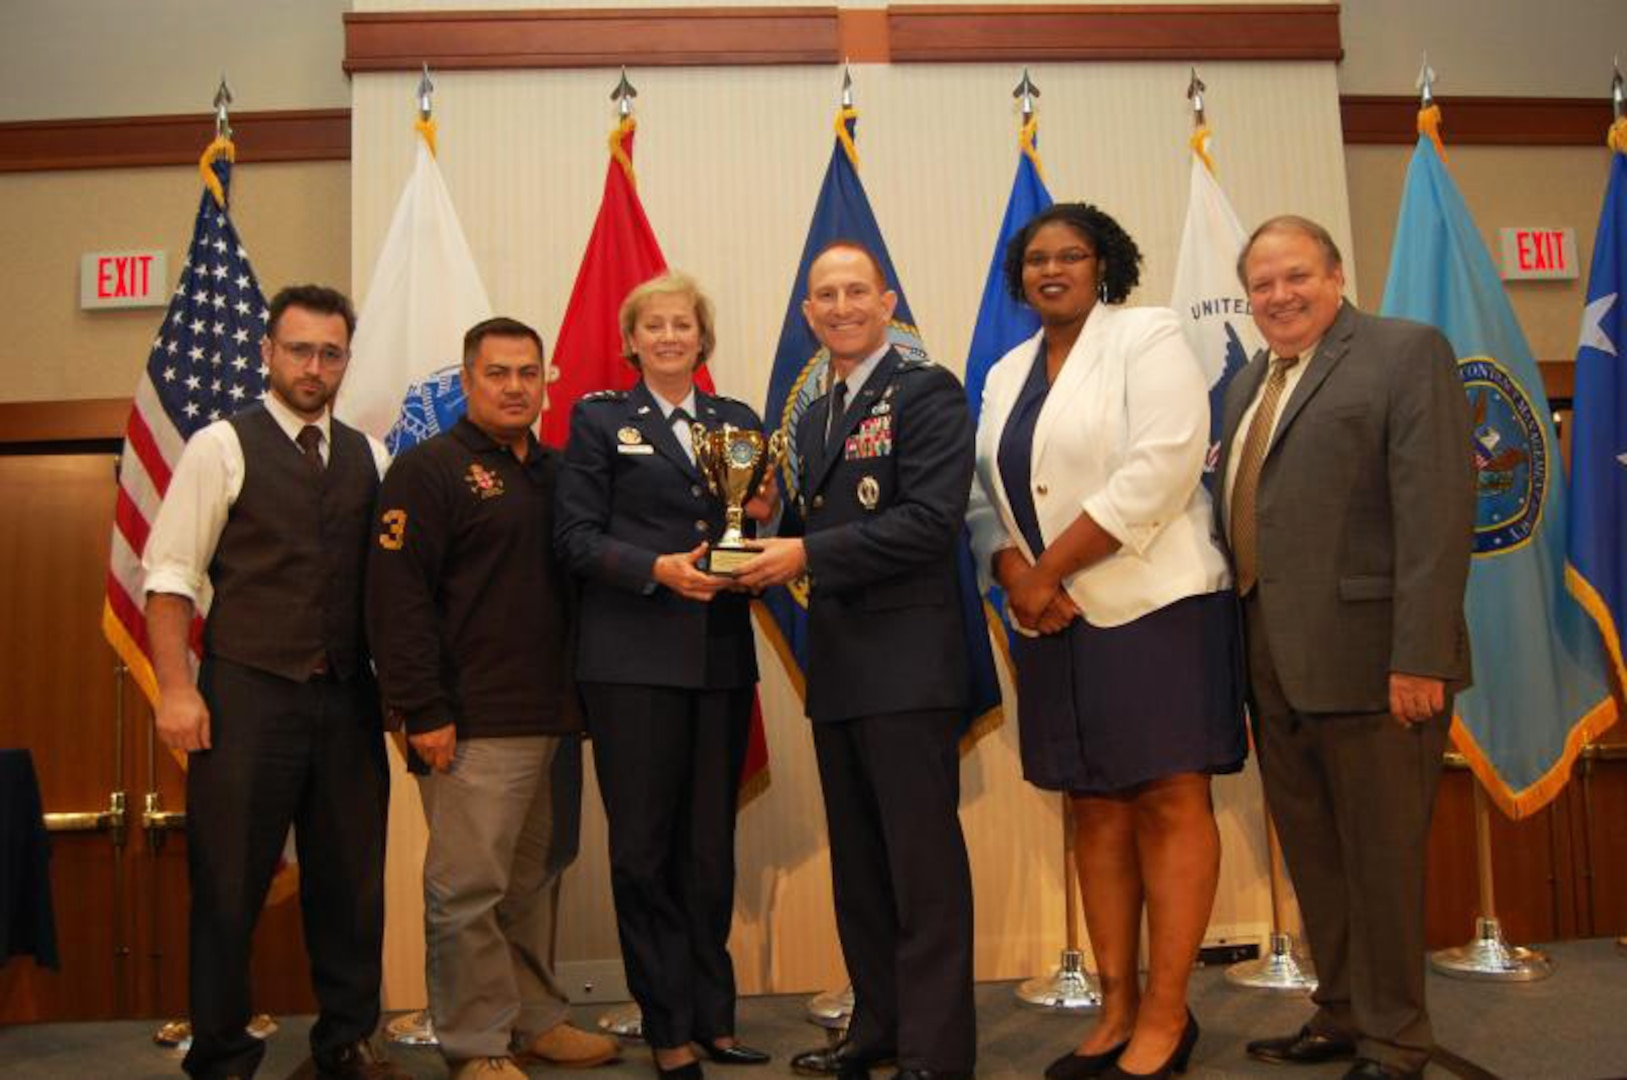 A group photo of military and civilian personnel smile while holding an award